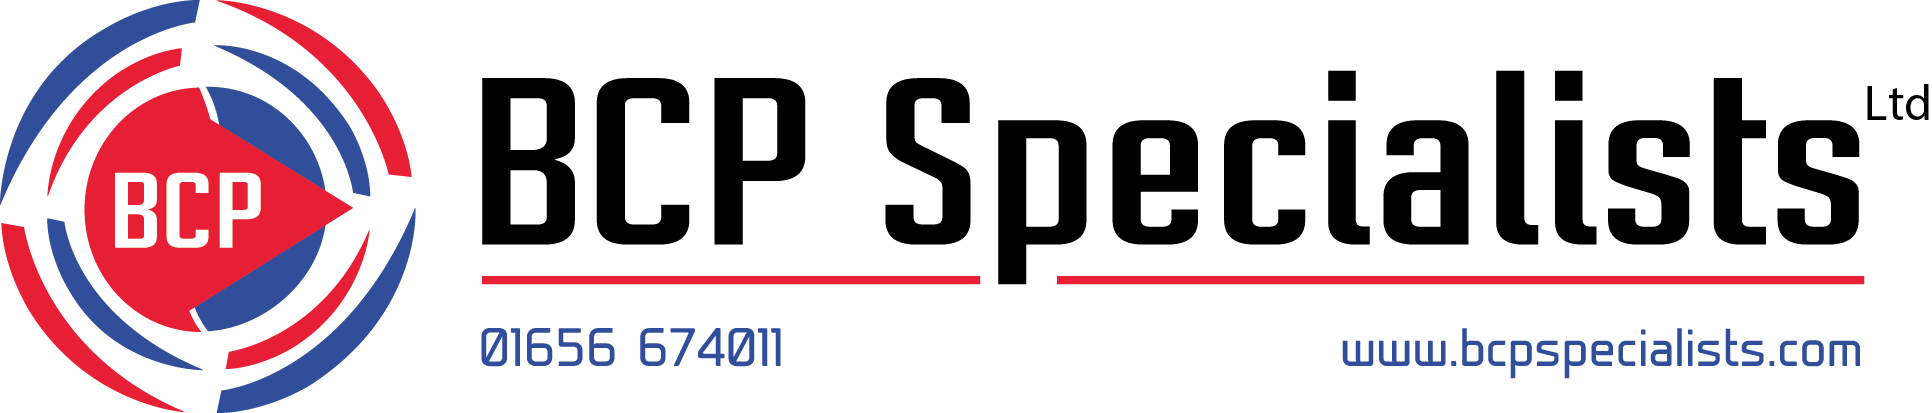 BCP Specialists